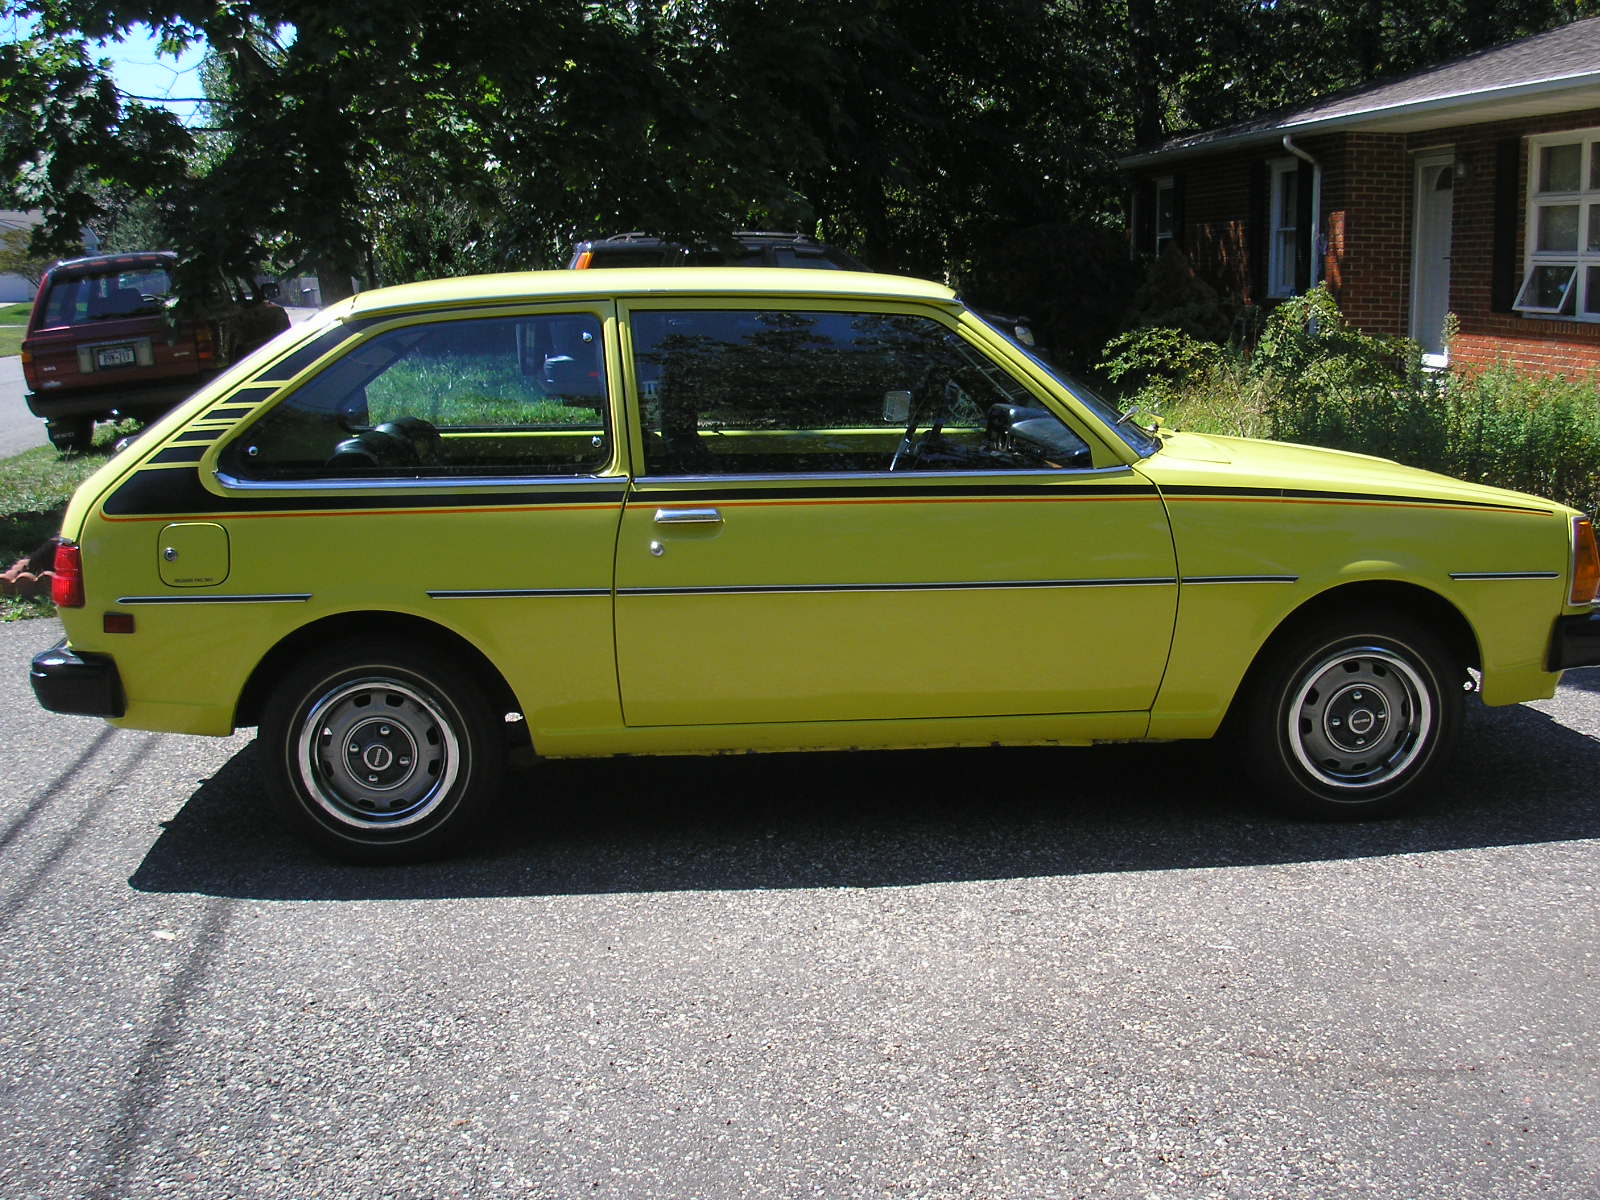 Mazda 1300 Wiring Diagram 1975 Fiat Color Yellow 1974 Amazing Pictures And Images Look At The Car 2011 6 I Sport Wire